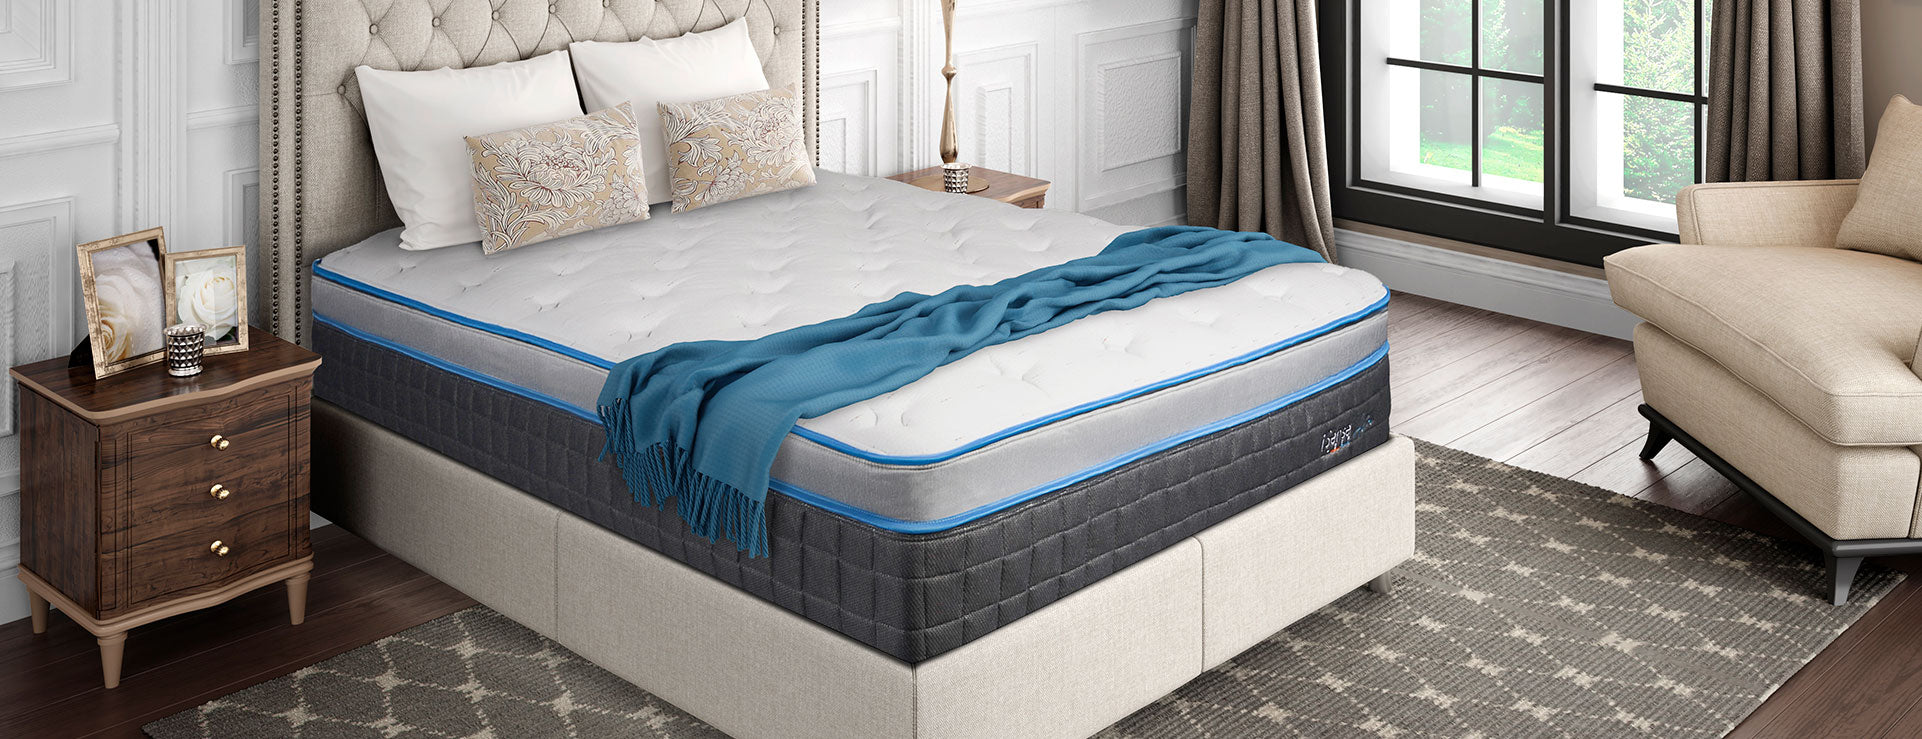 COMFORT CONTROL Air Mattress - California King